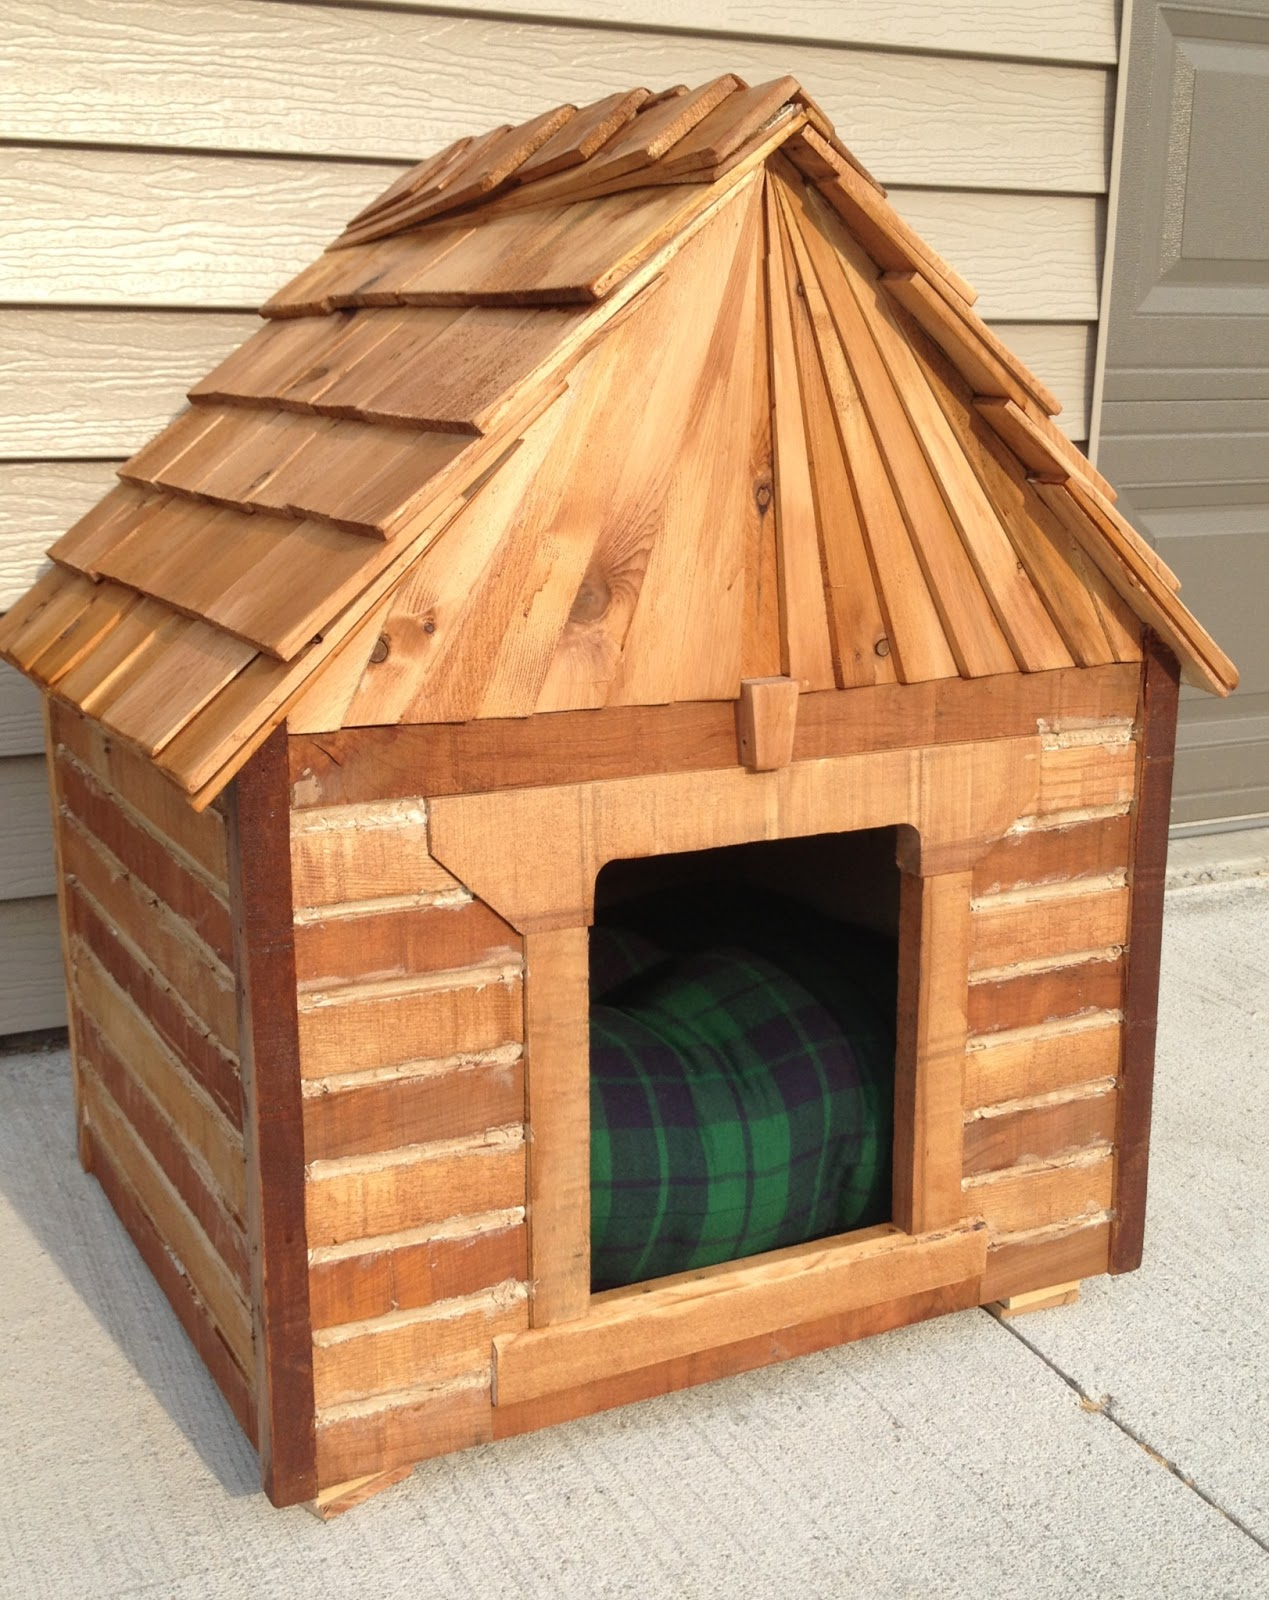 Build Your Own Cabin Dog House For Less Repurposed Building Materials Re Revive Renew